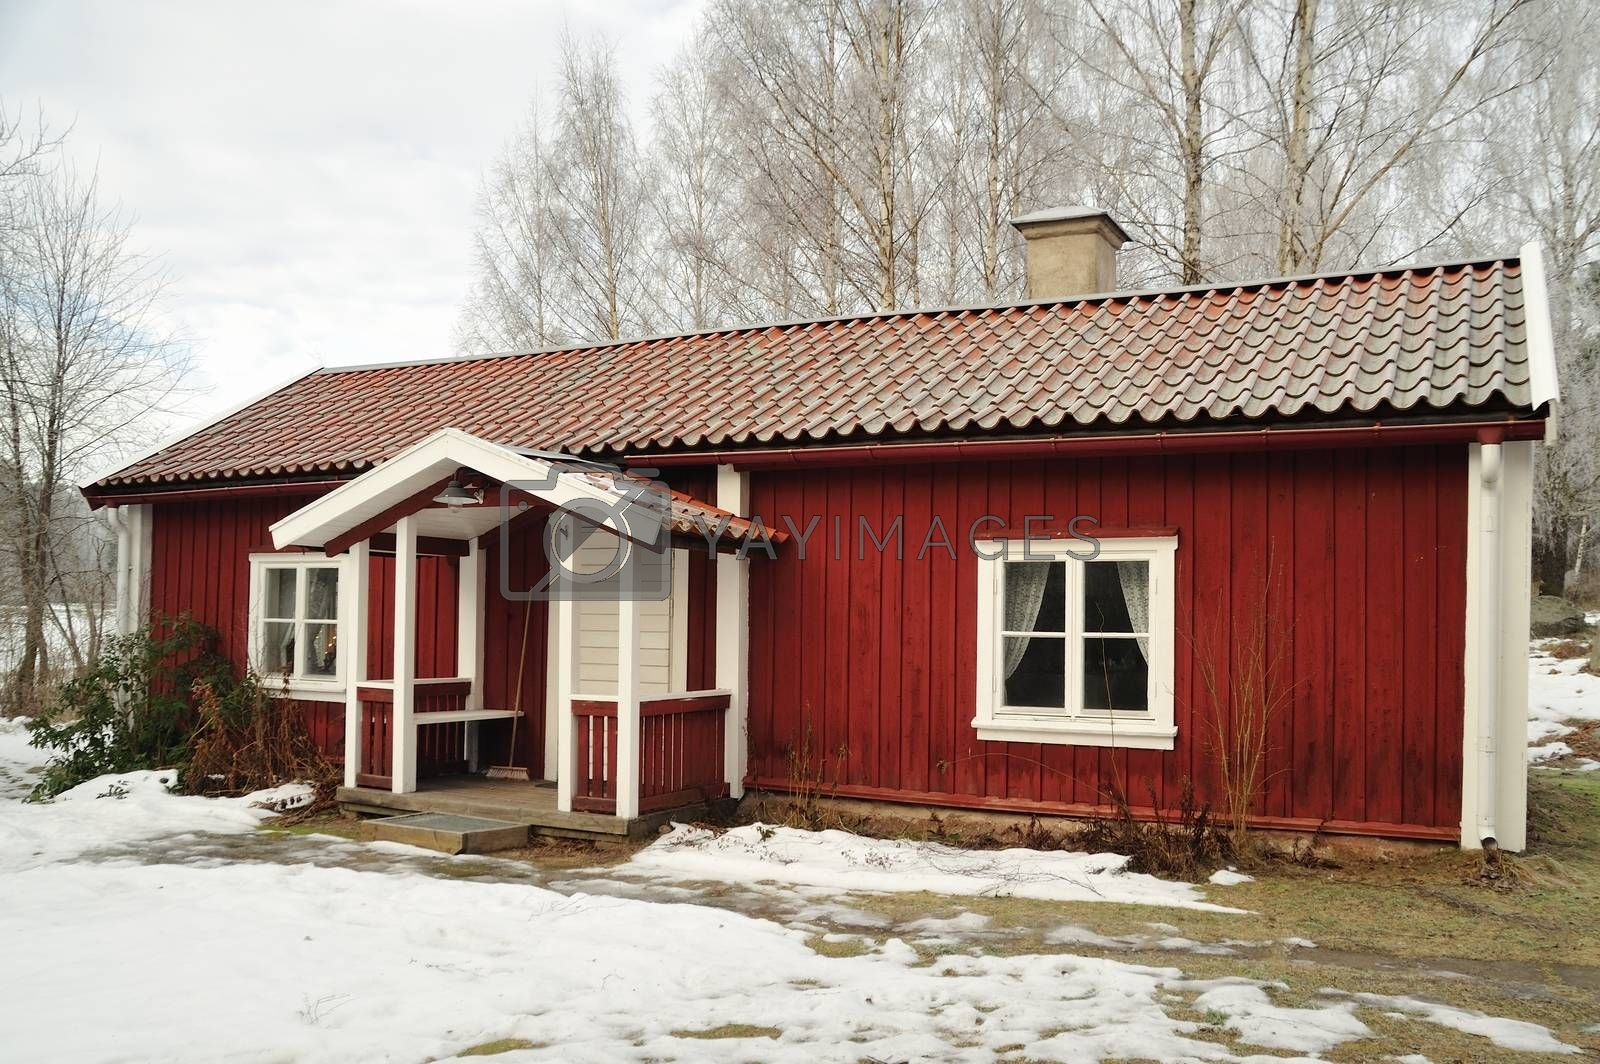 Typical red wooden house in Sweden on a clear and cold winter day